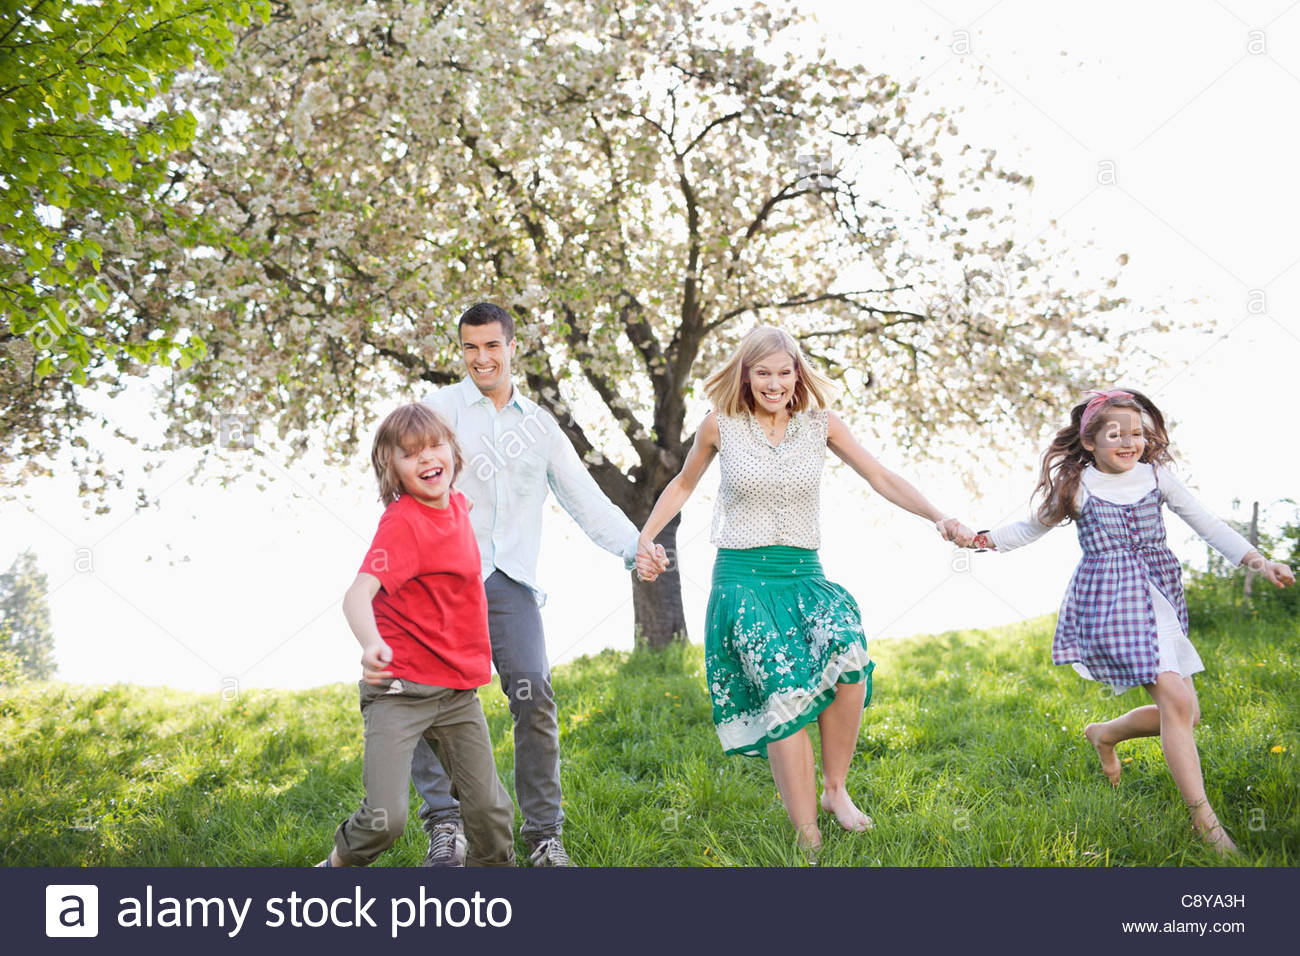 Family holding hands in park - Stock Image